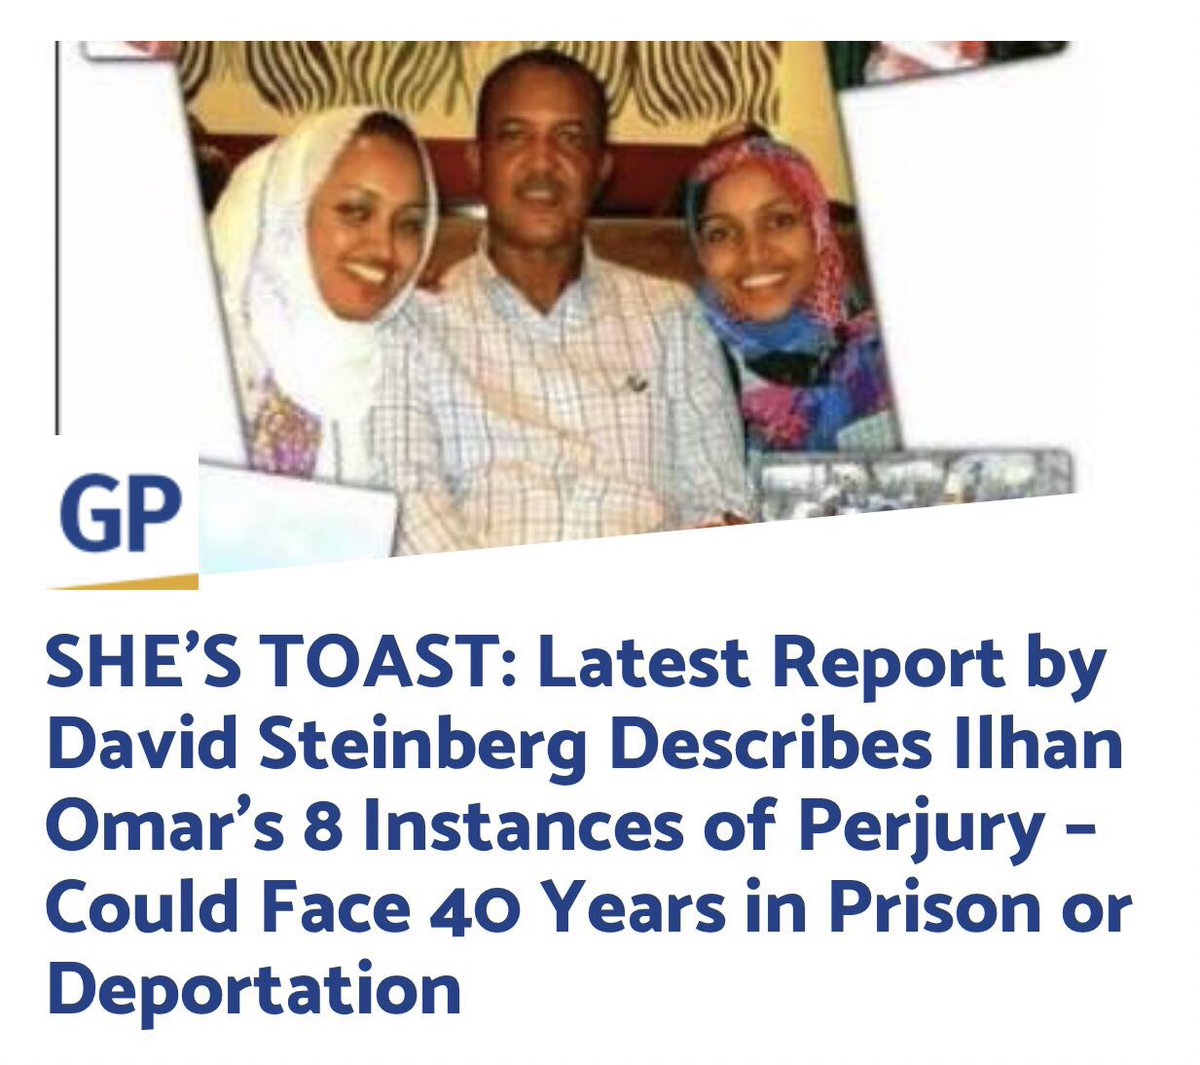 Authorities should seriously look into Omar's numerous frauds.  @TheJusticeDept